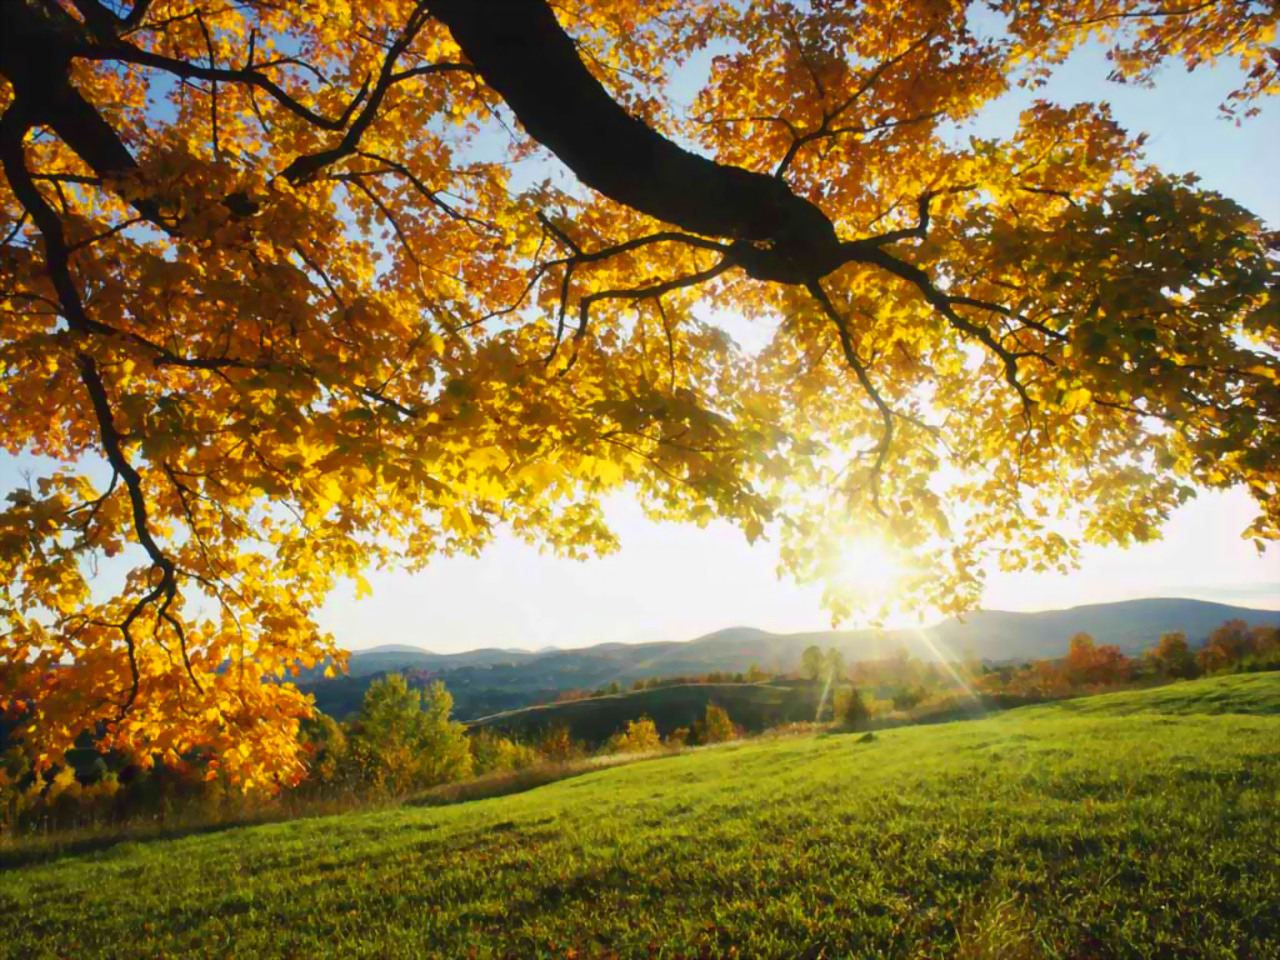 autumn hd wallpapers autumn hd wallpapers autumn hd wallpapers 1280x960